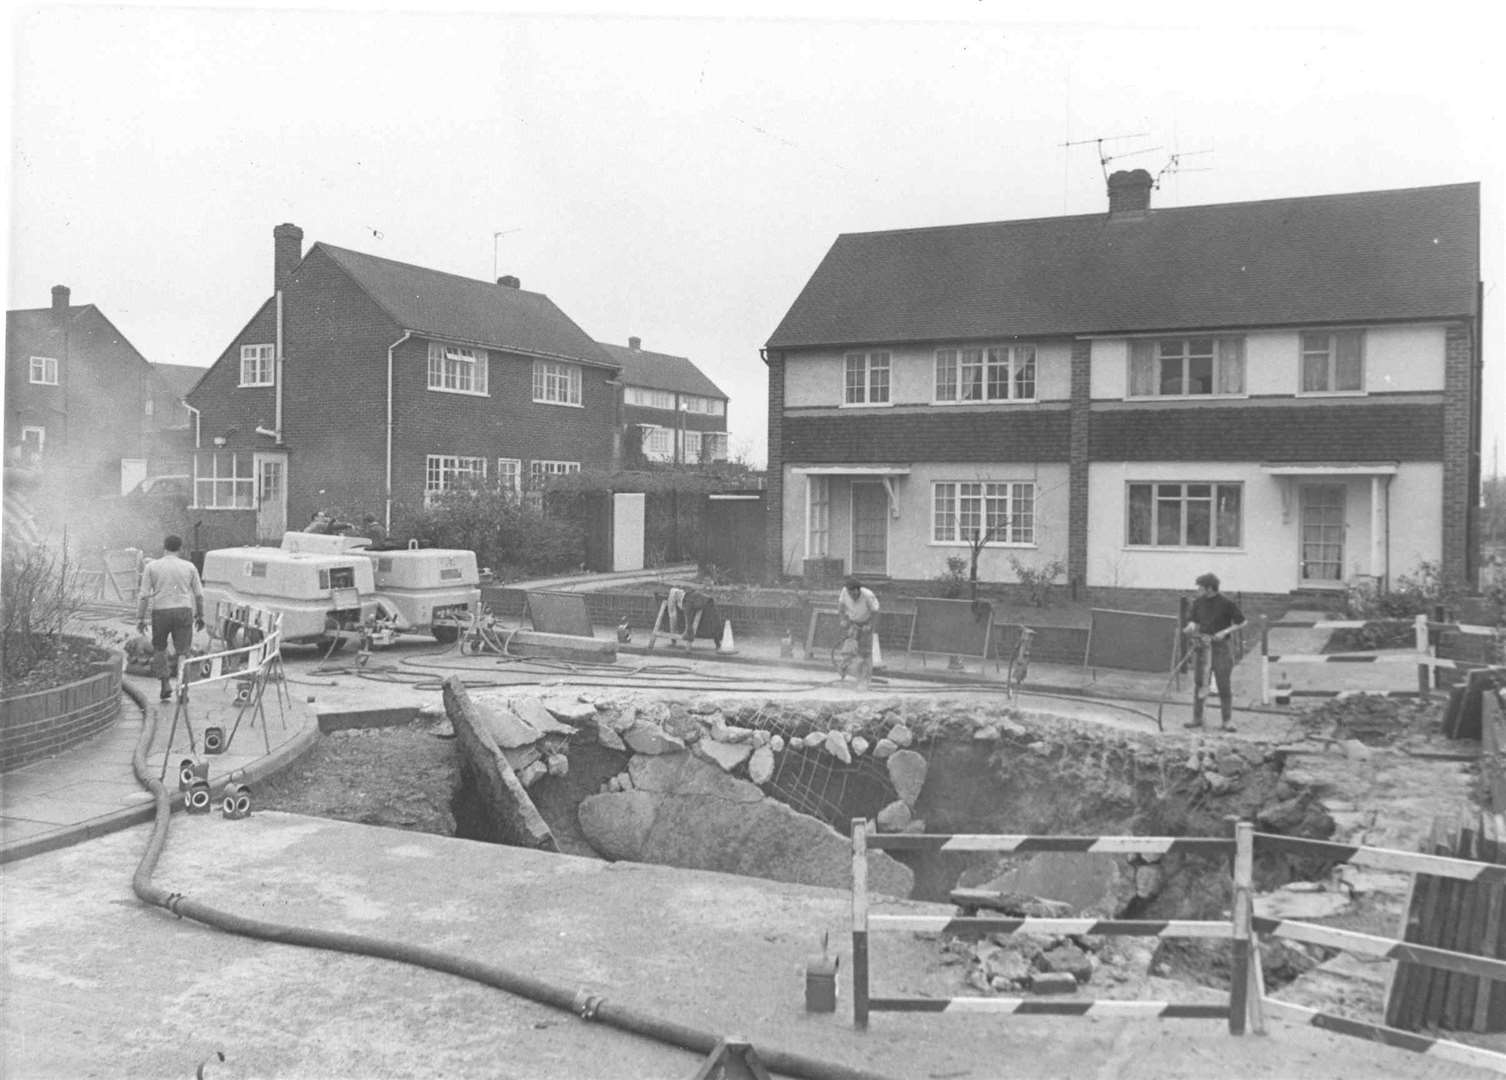 A large hole in the road opened up in Squire Close, Strood in August 1970 - three years after the tragedy in Frindsbury